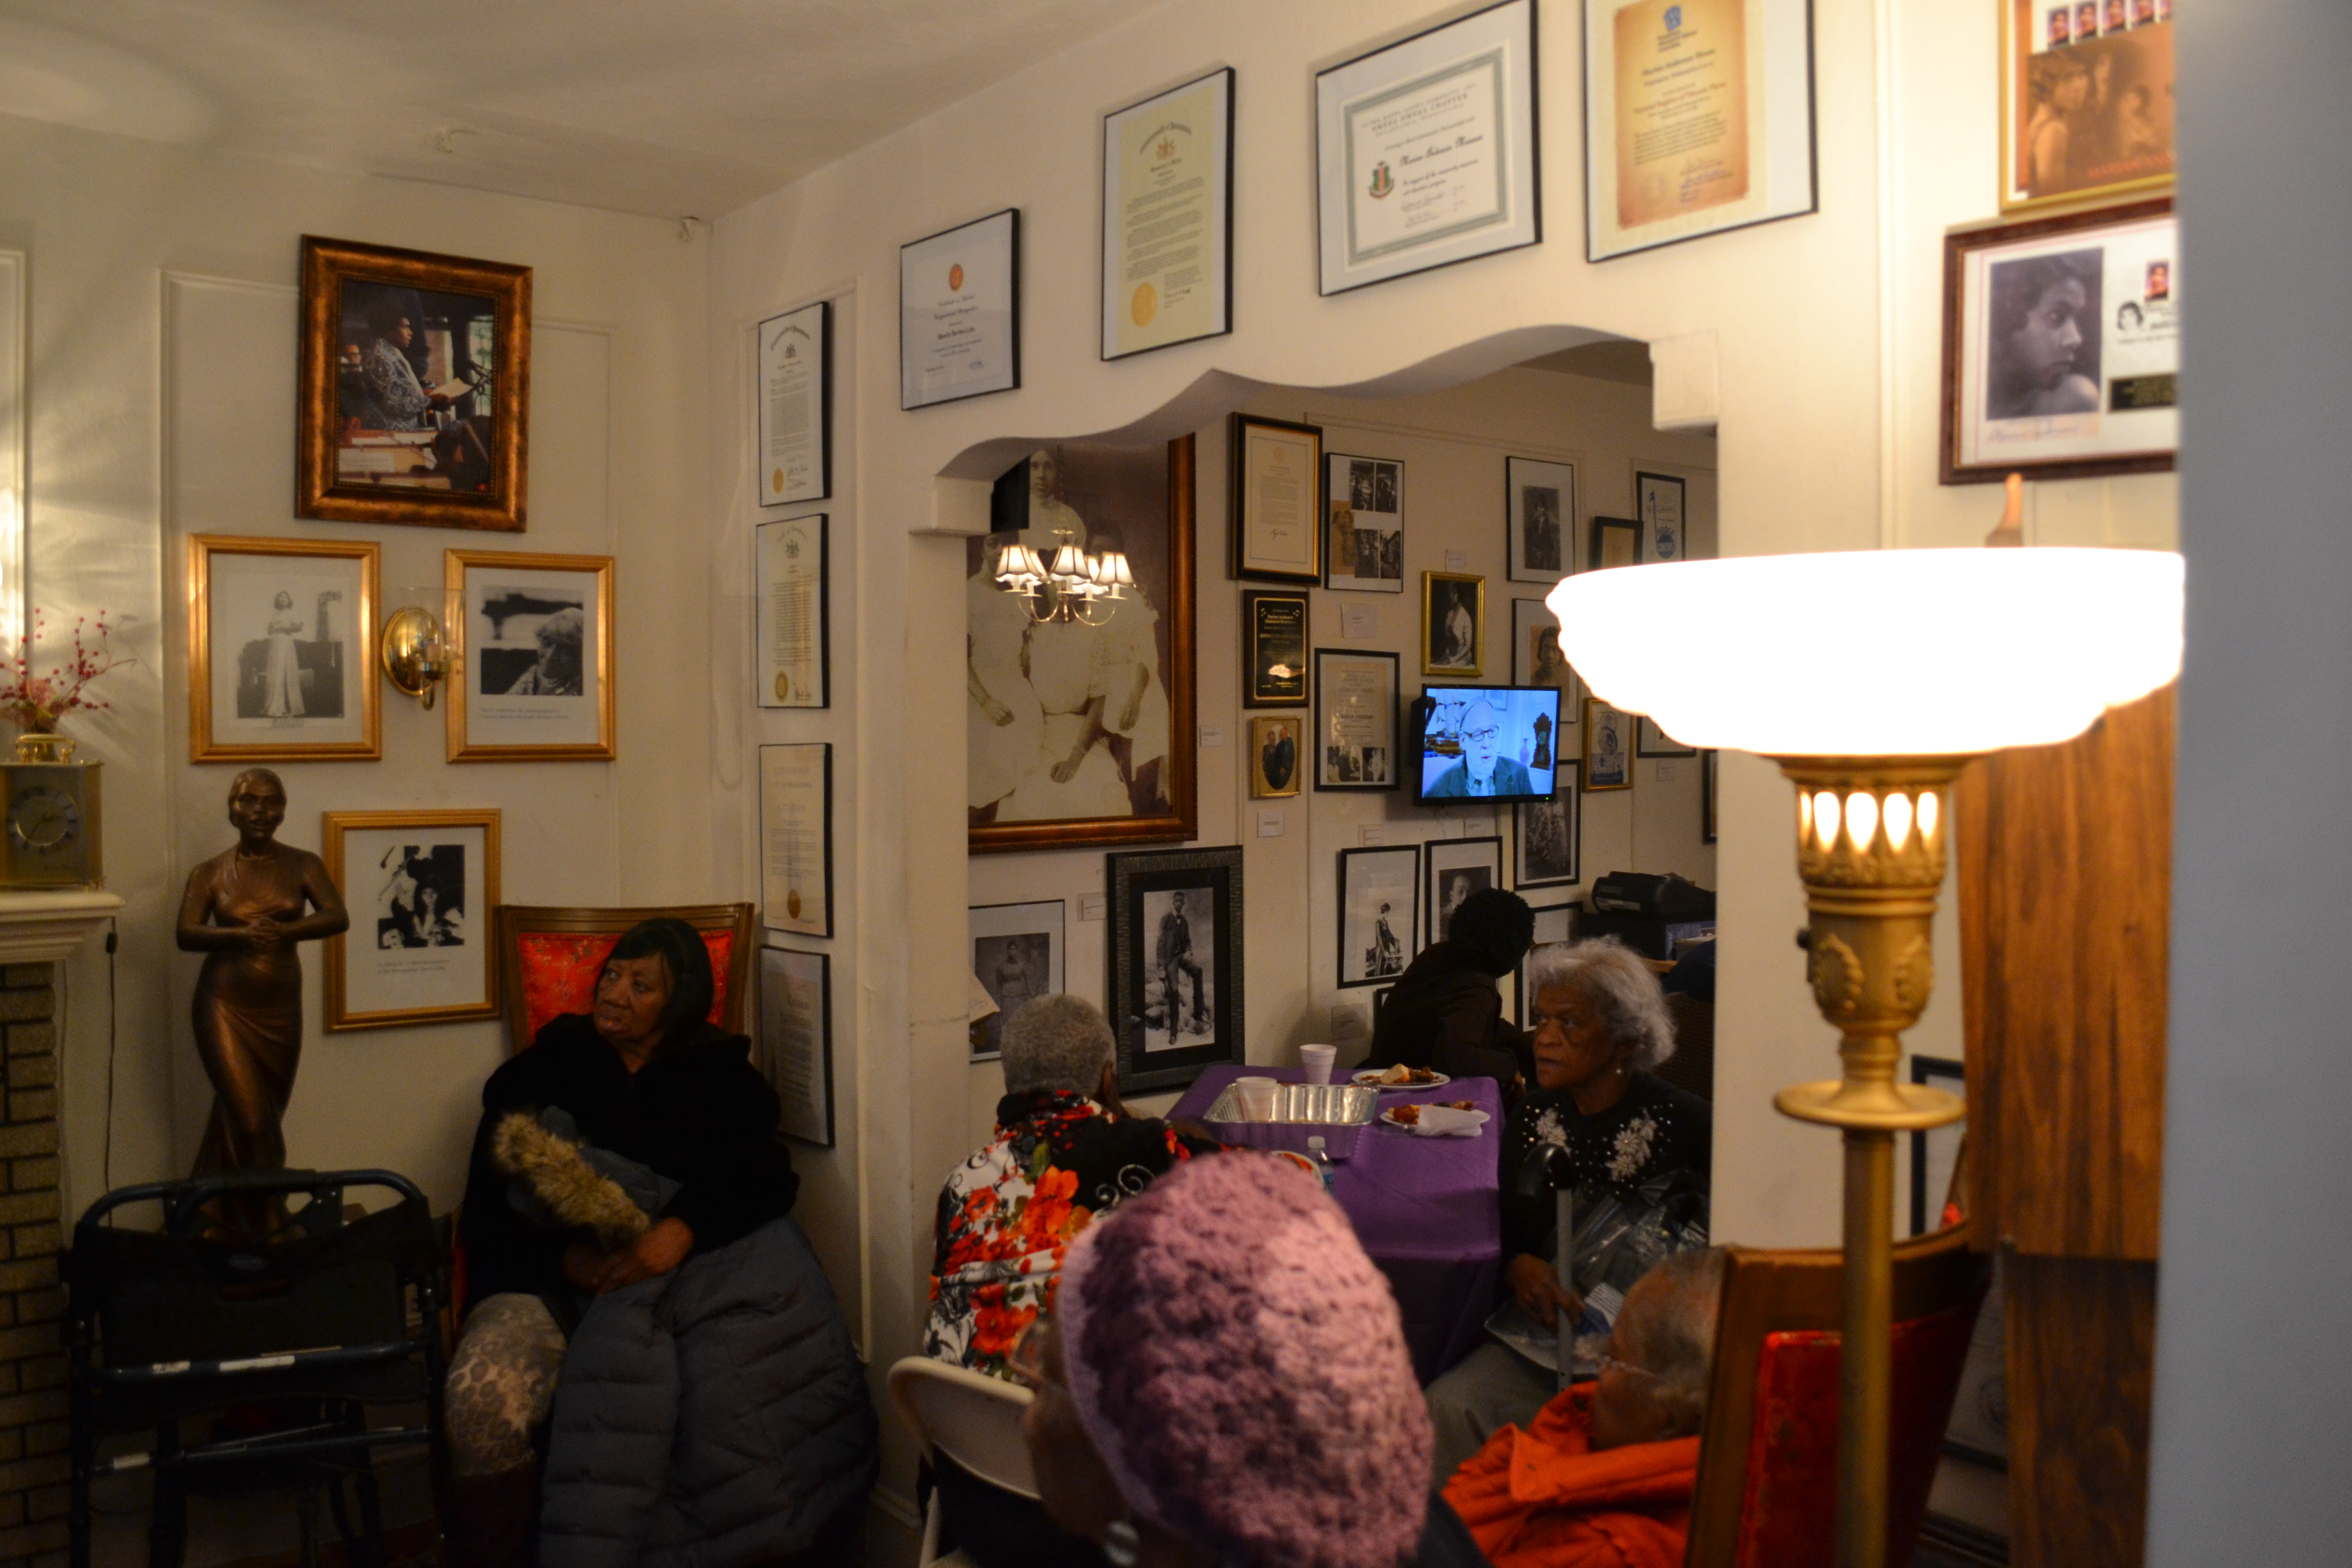 Photos, plaques and certificates line the wall of Anderson's home, now the Marian Anderson Residence Museum